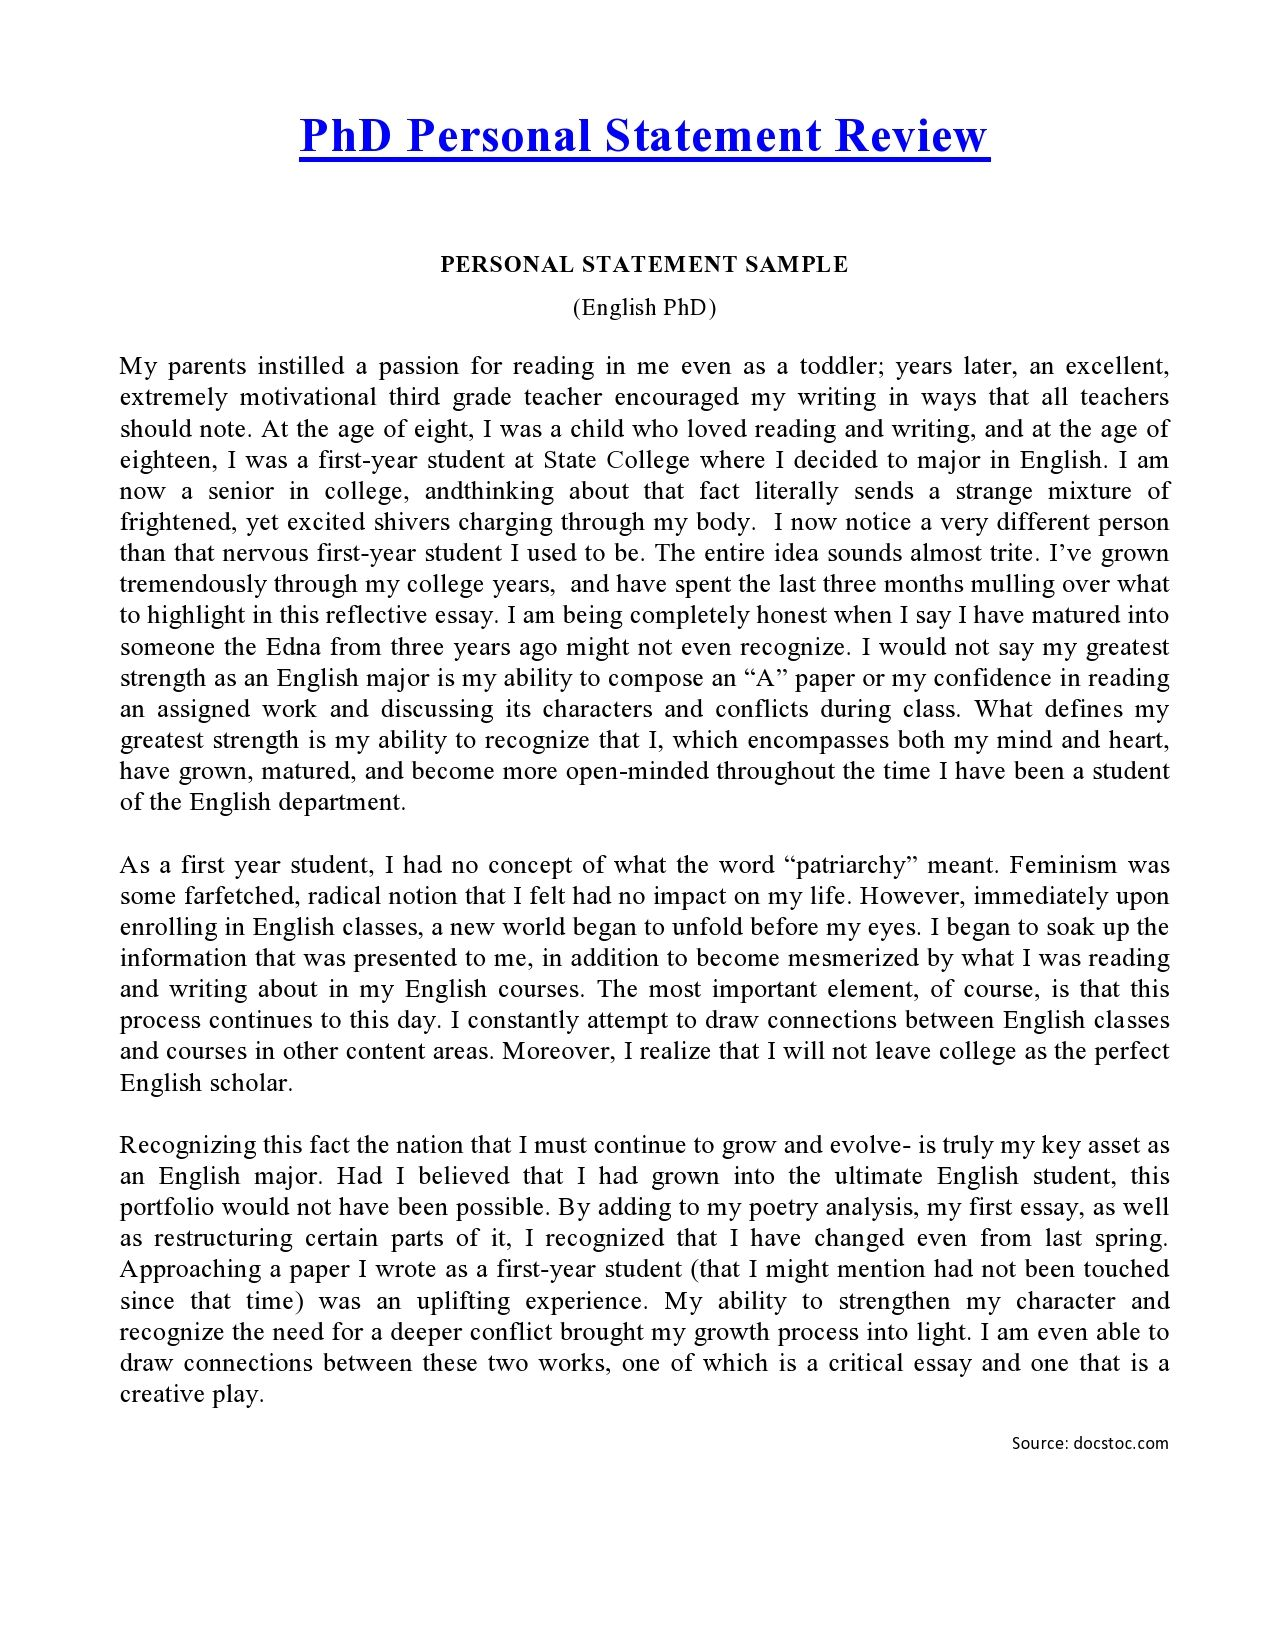 personal statement phd social work statements graduate school examples sample example postgraduate template letter источник format layout program doctorate job